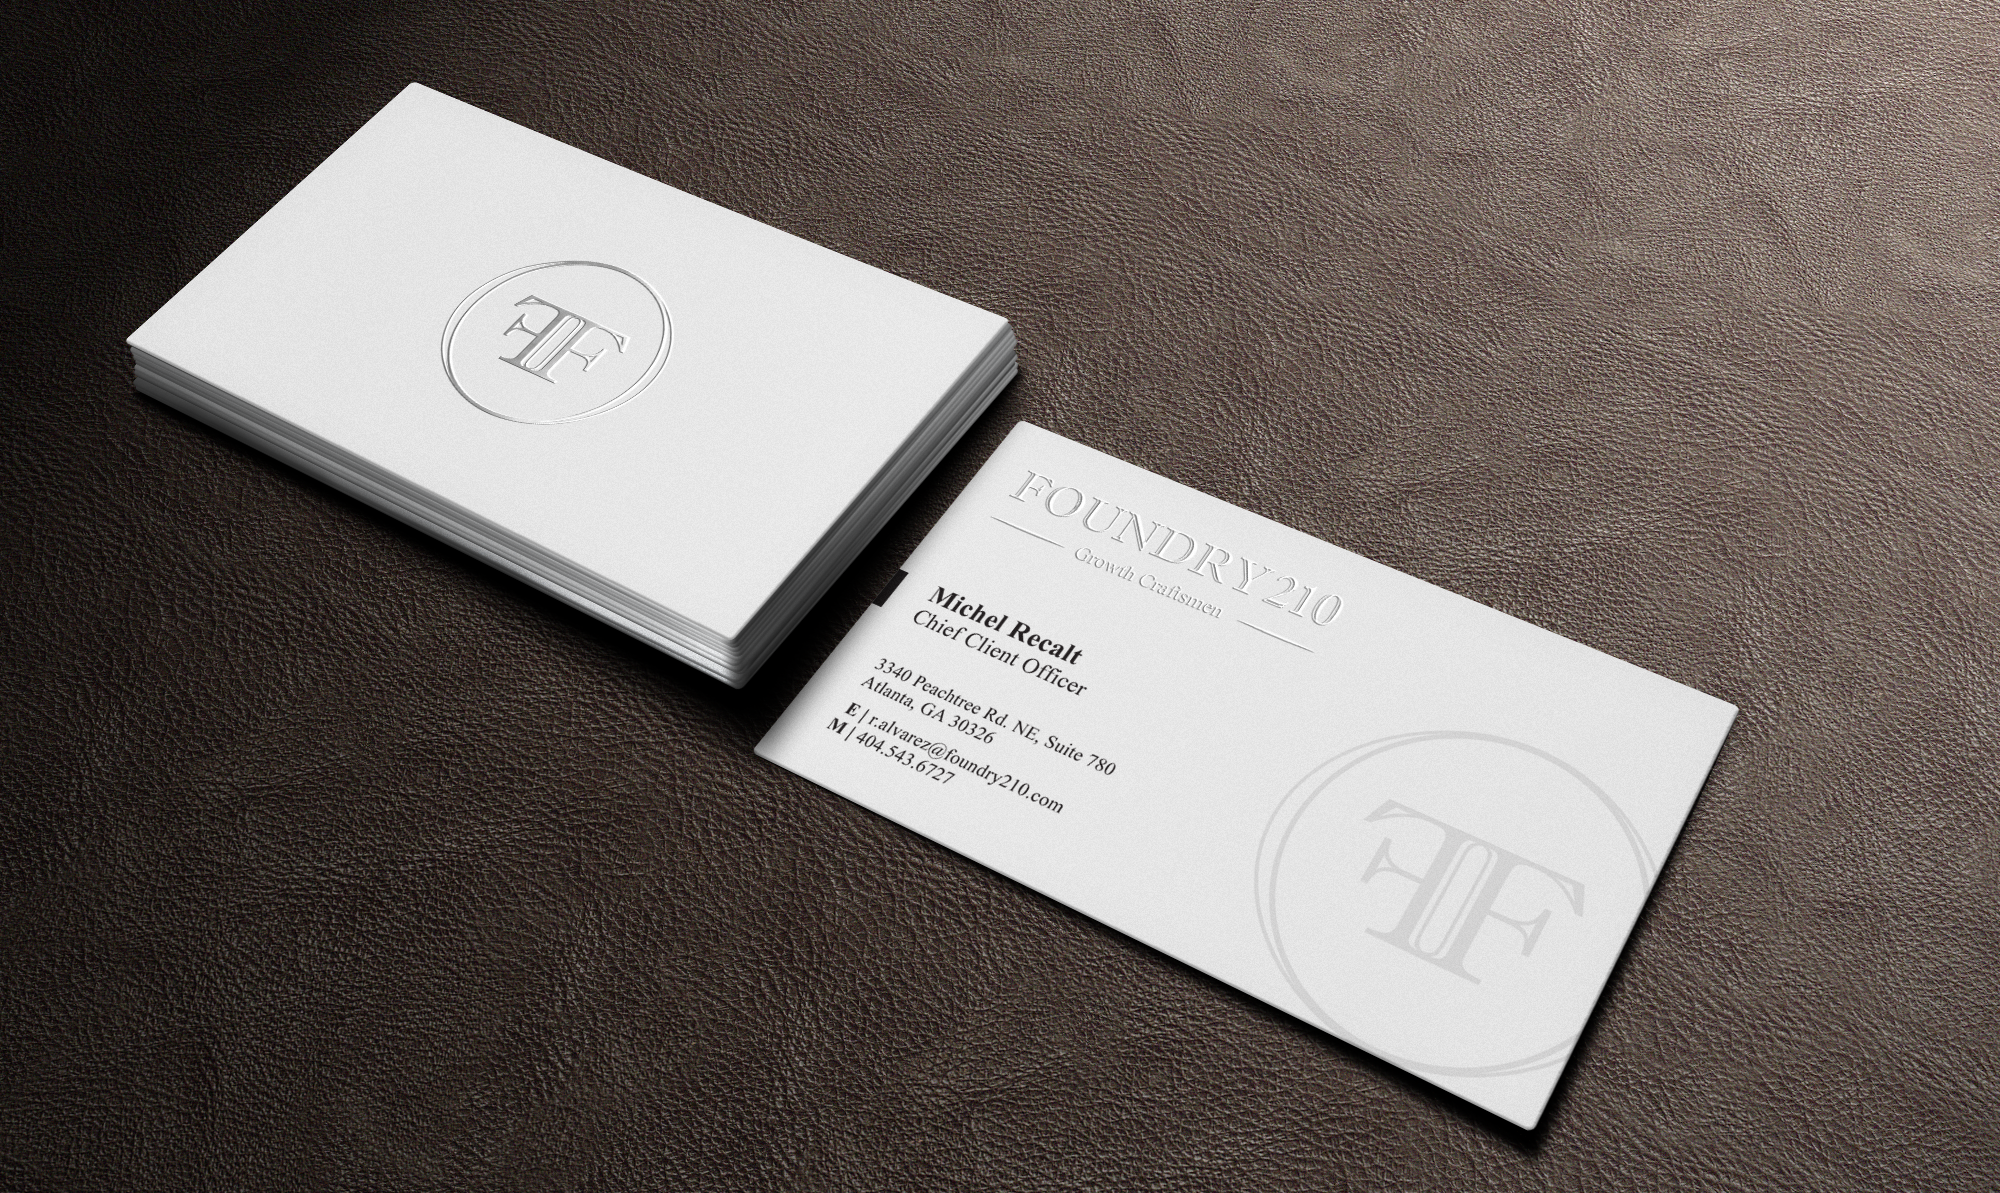 Need a classy/elegant business card for high end growth consultancy.